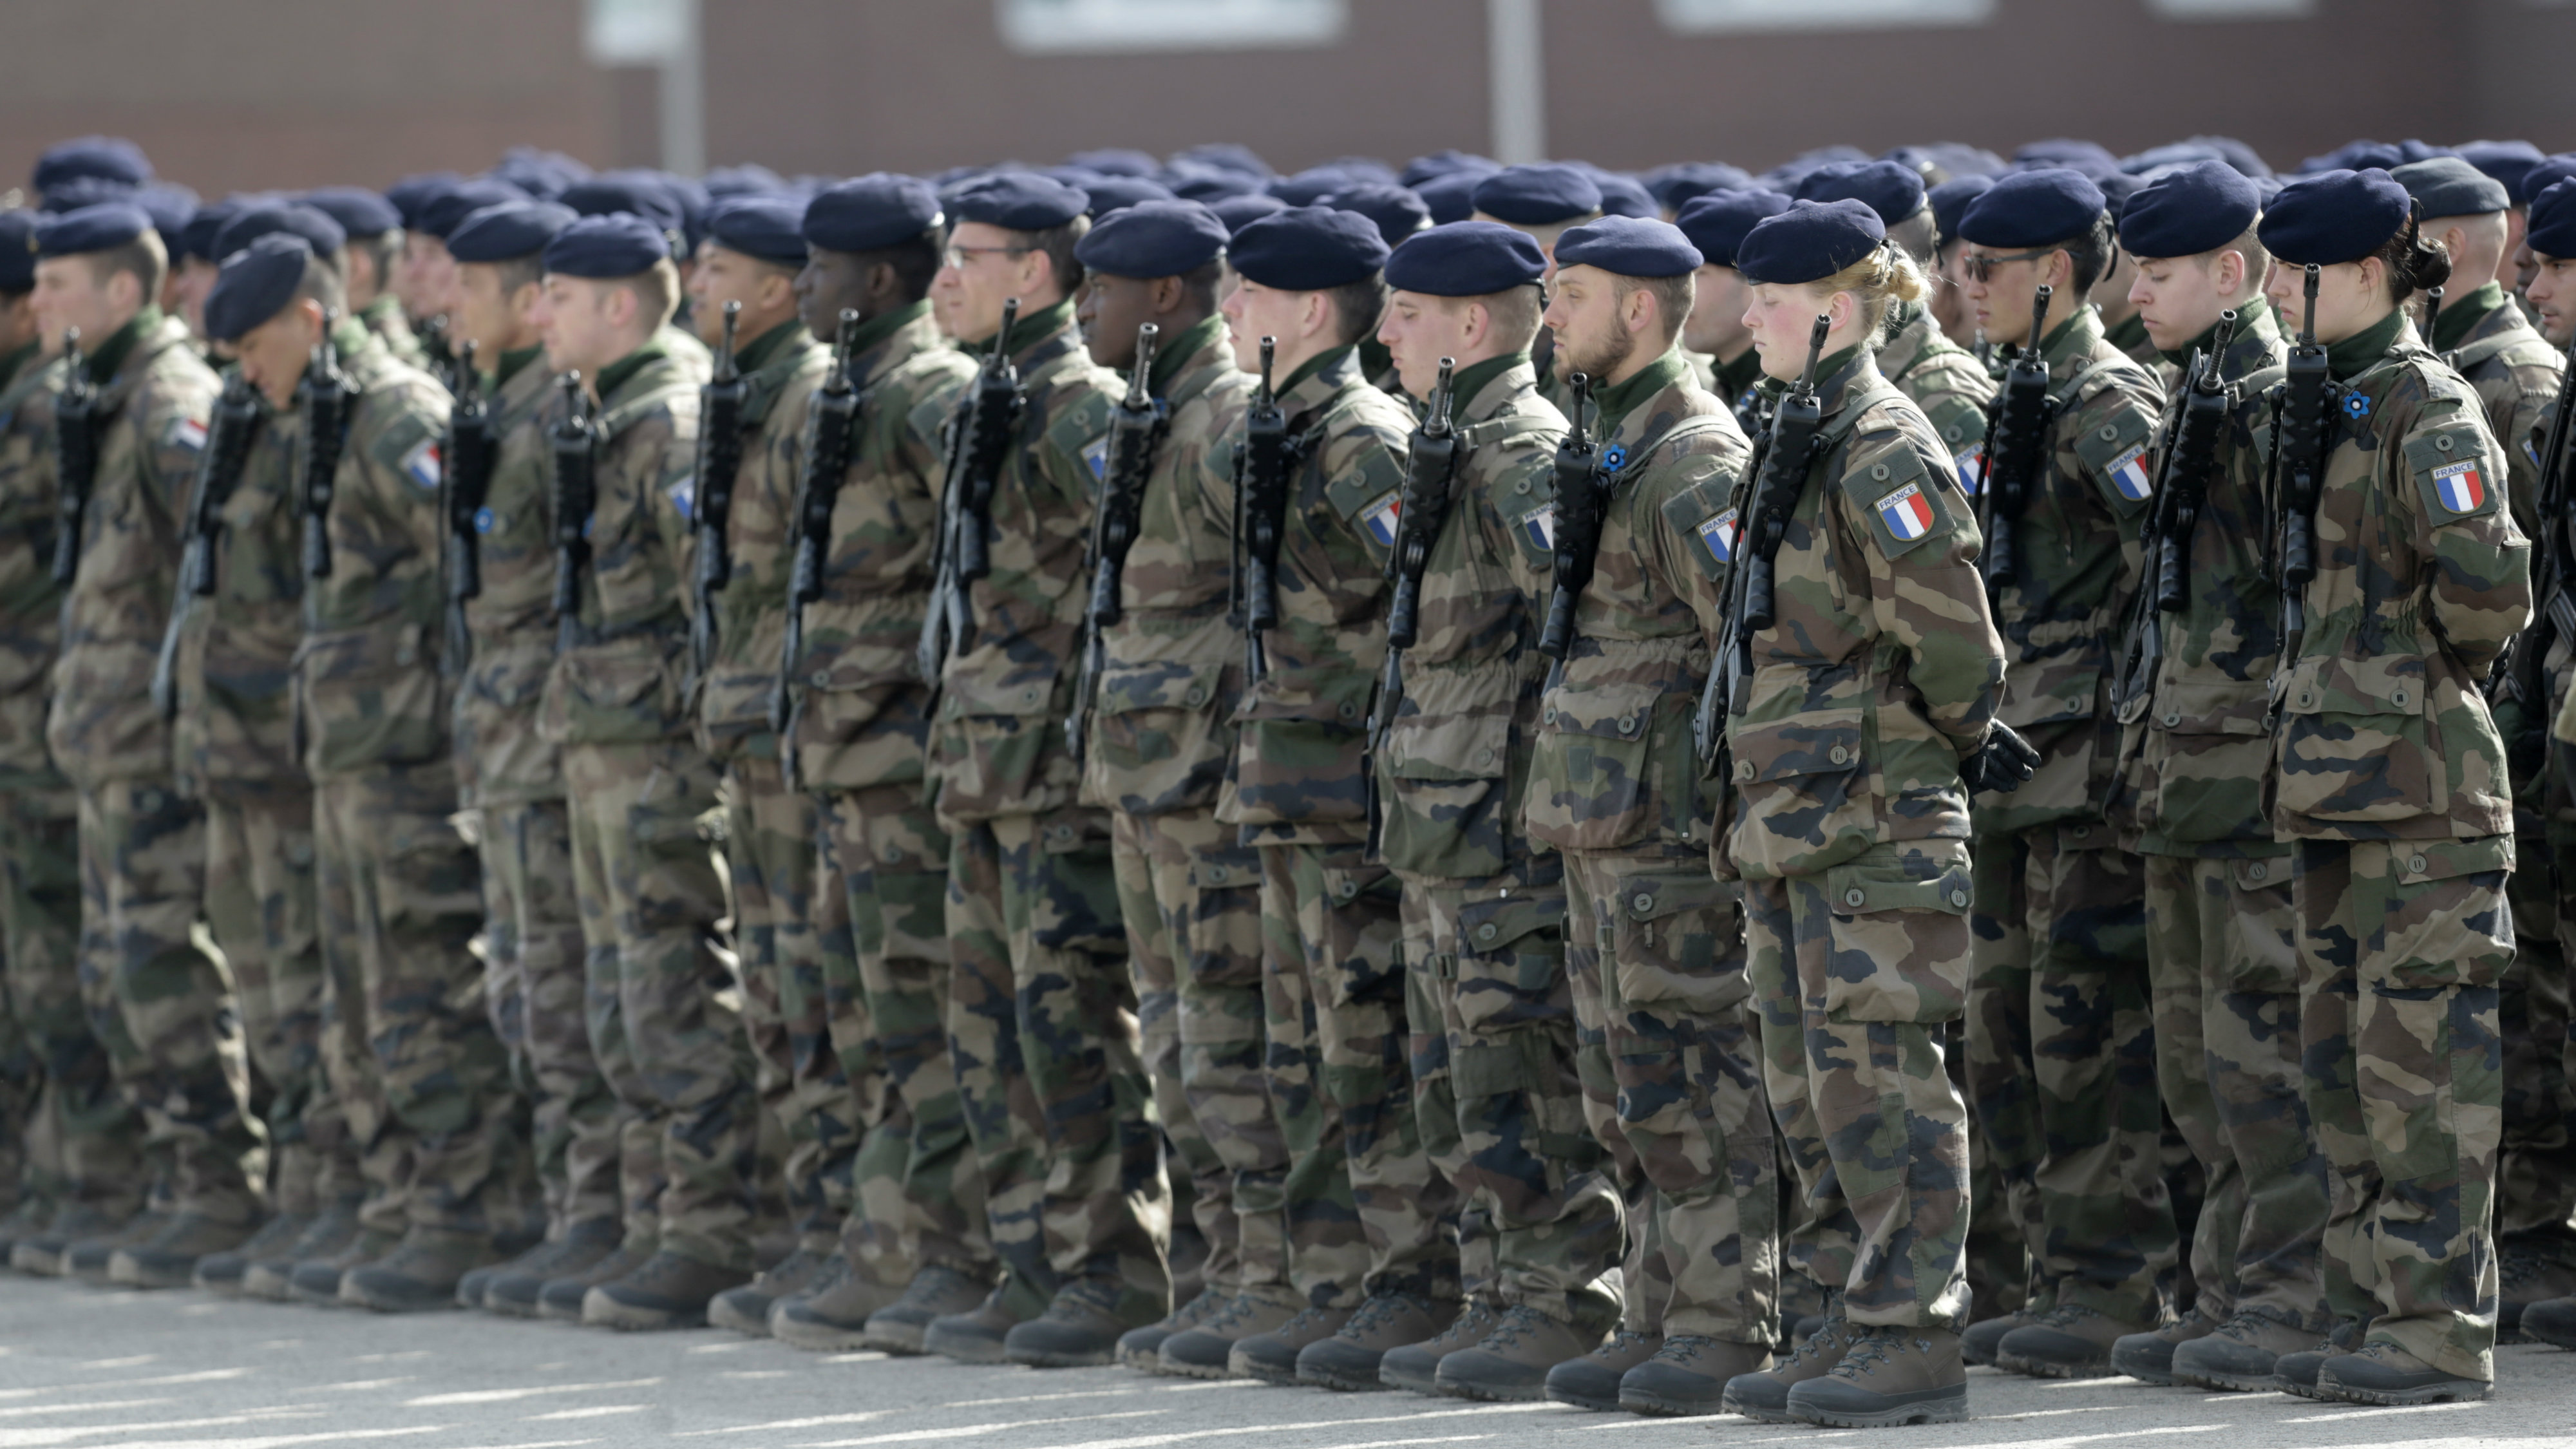 French soldiers during the official ceremony welcoming the deployment of a multi-national NATO battalion in Tapa, Estonia, April 20, 2017.